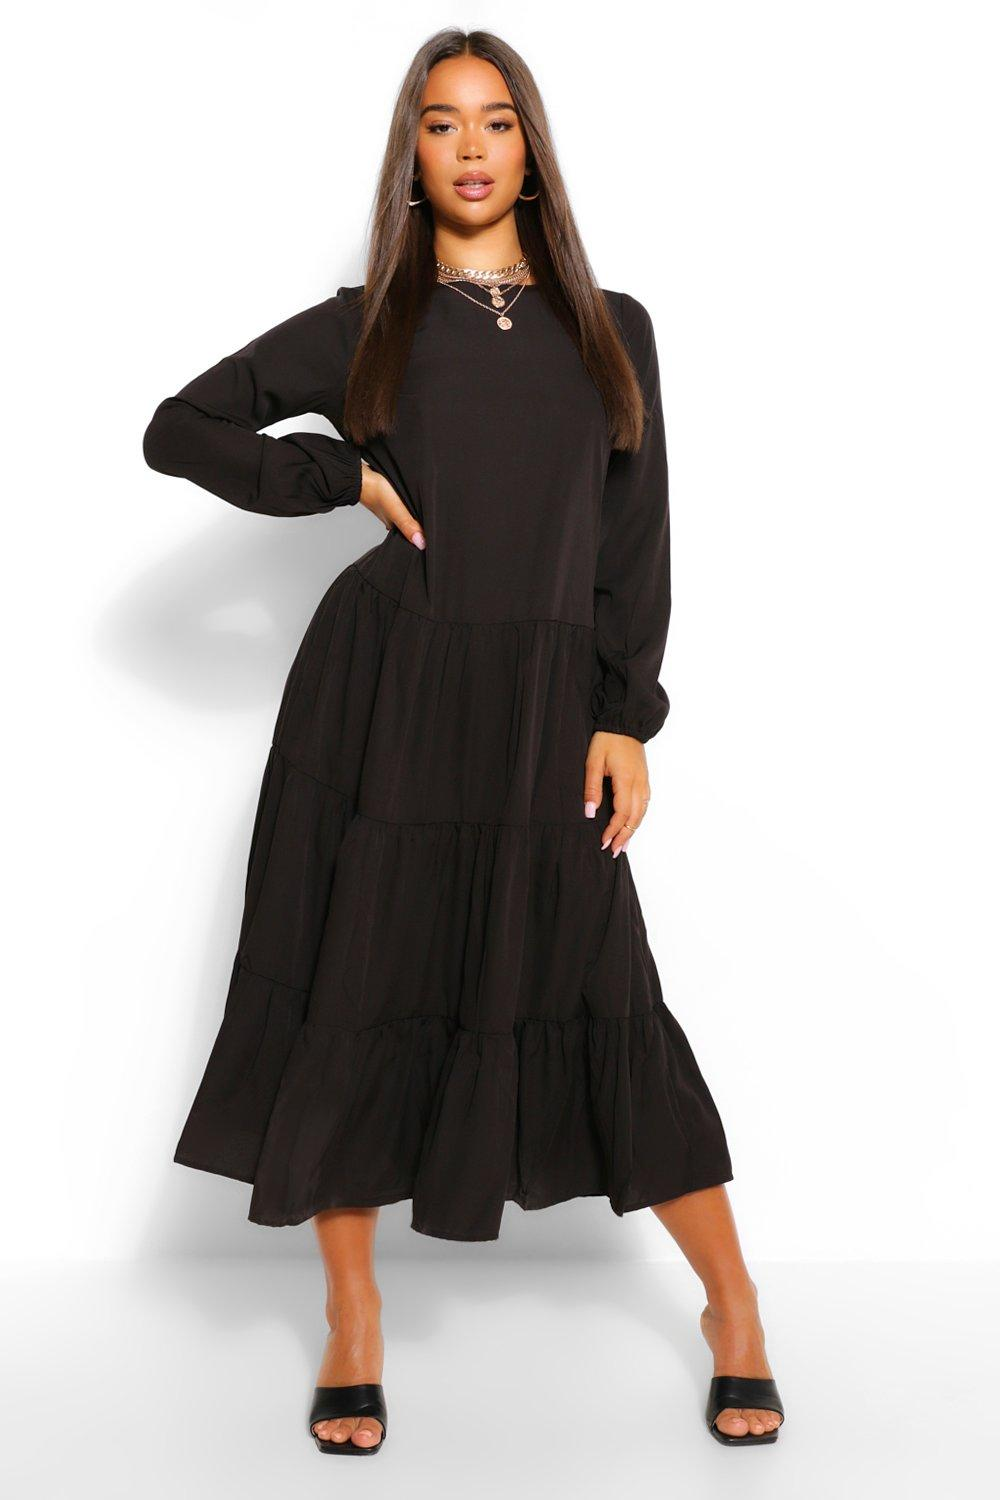 Cottagecore Dresses Aesthetic, Granny, Vintage Womens Woven Extreme Tiered Smock Dress - Black - 14 $14.00 AT vintagedancer.com